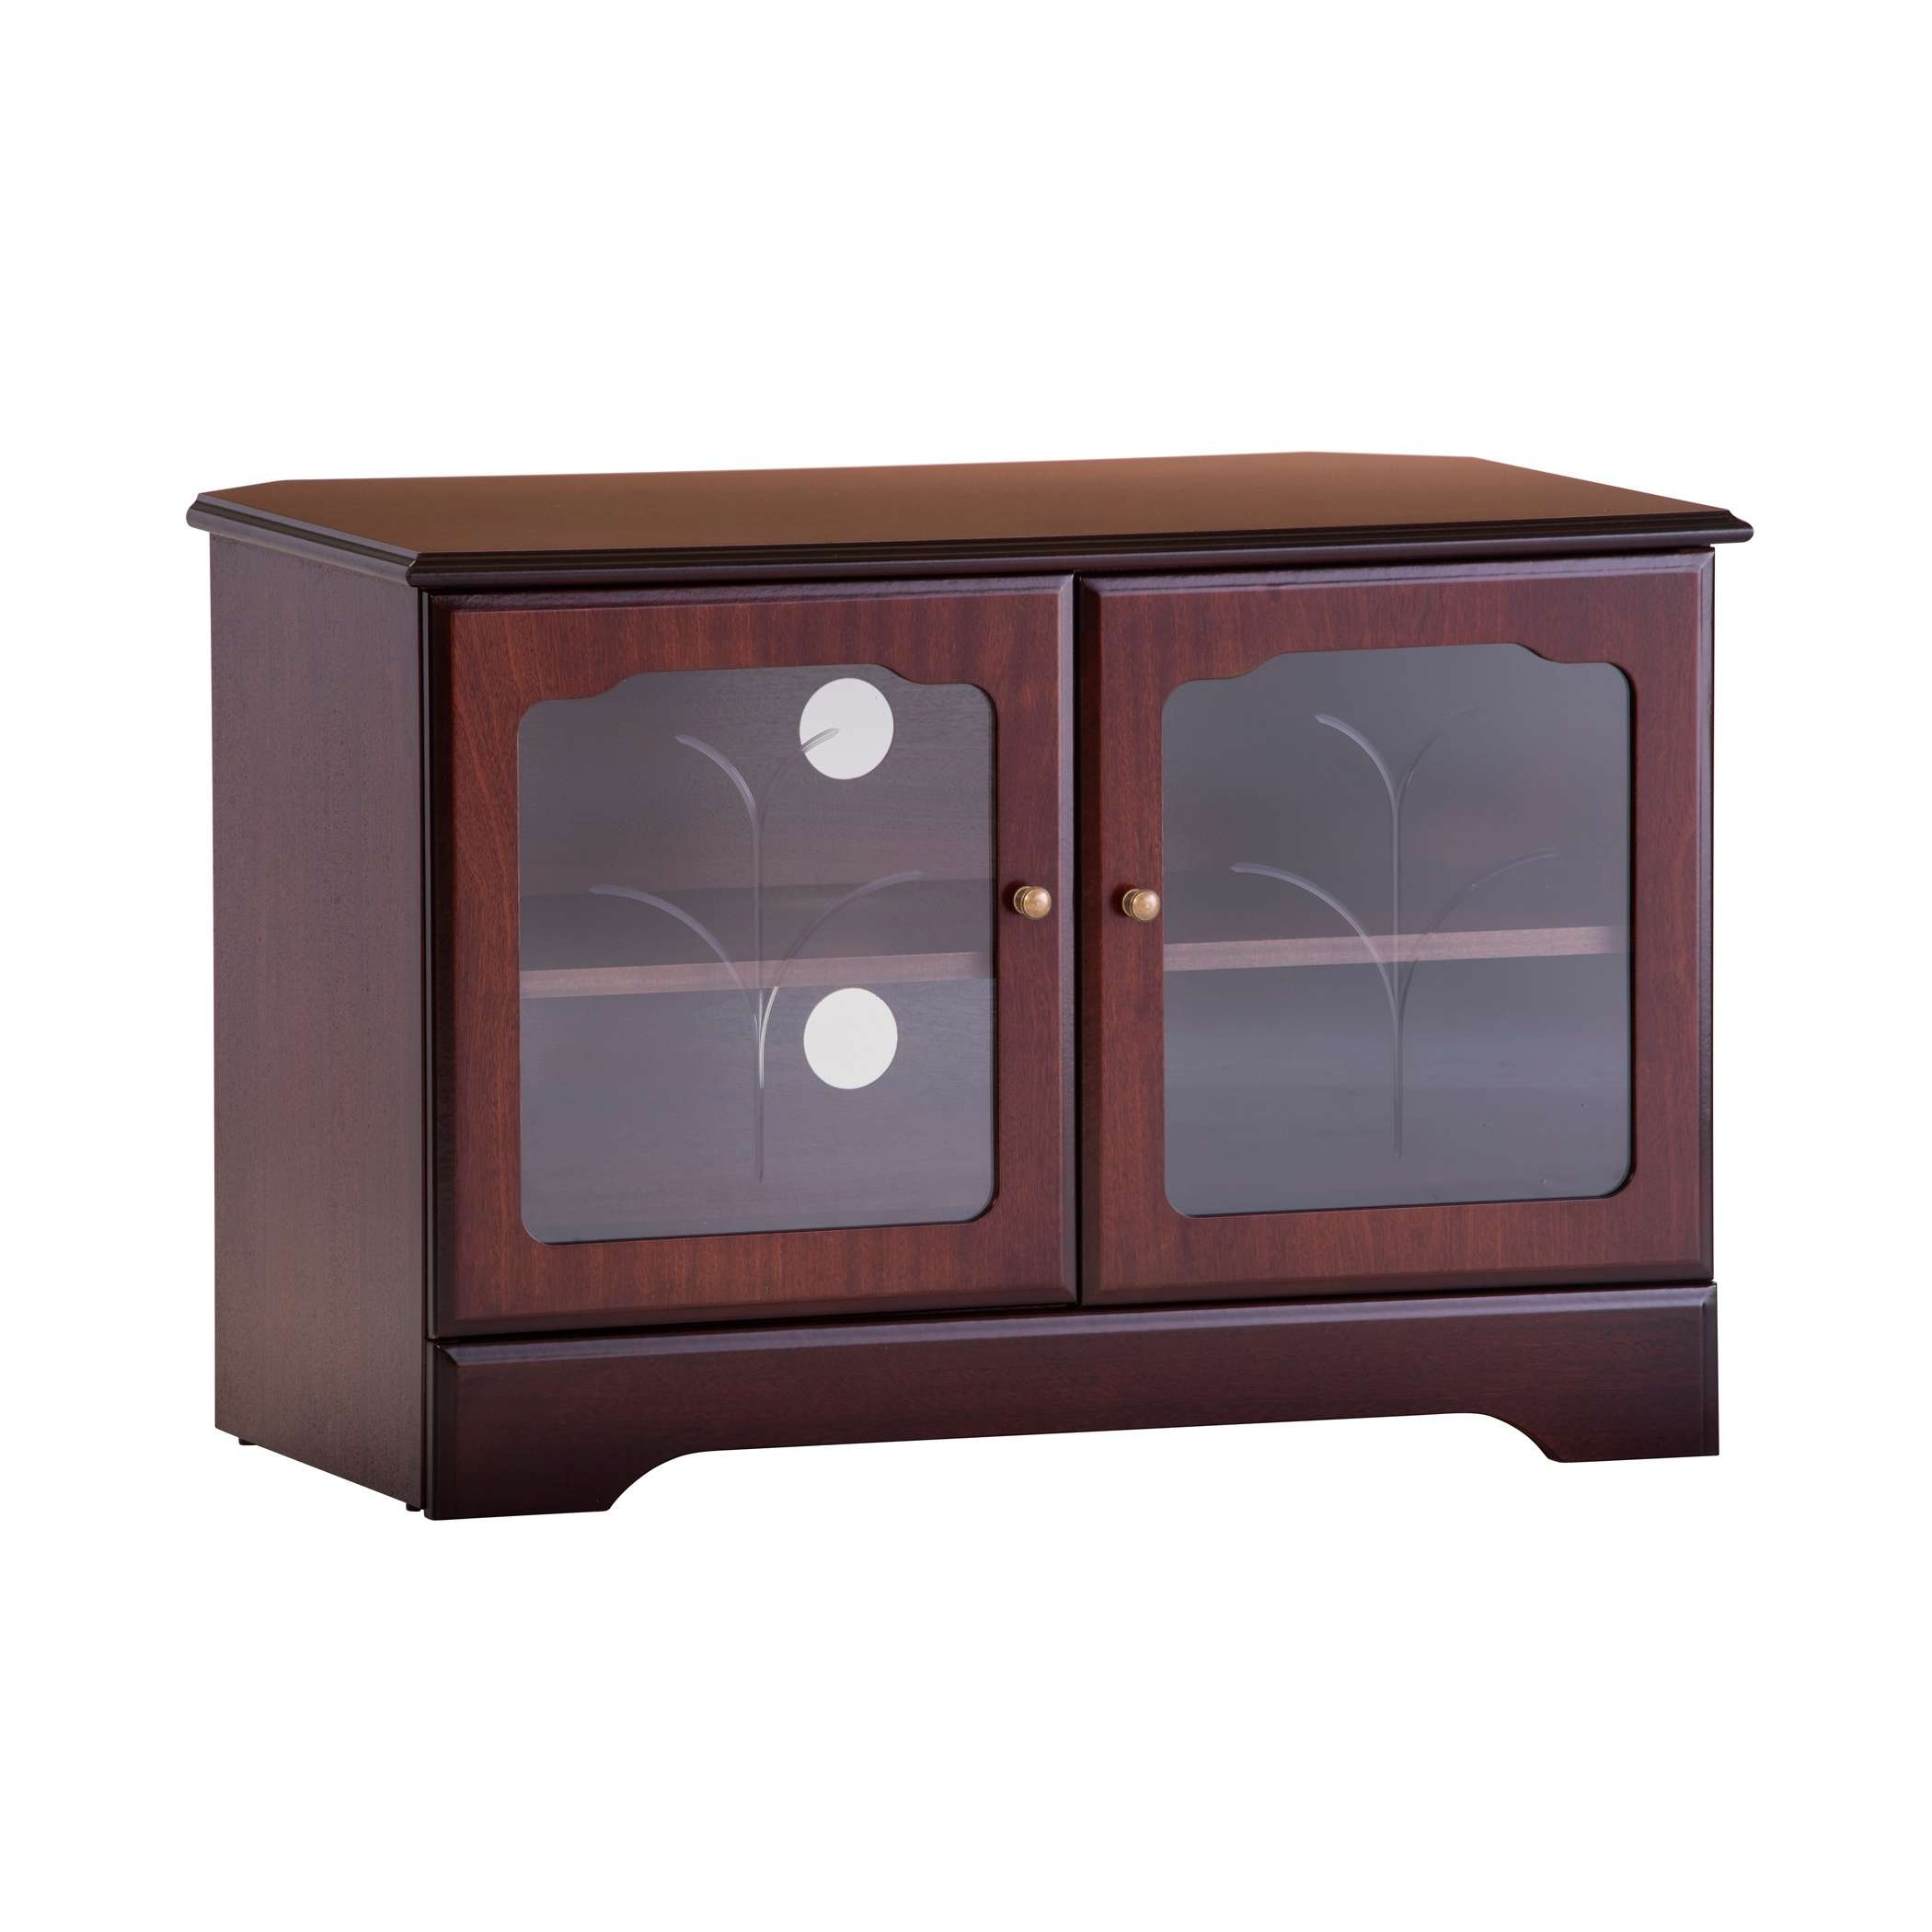 Corner Tv Stand In Mahogany Or Teak | Gola Furniture Uk Regarding Mahogany Corner Tv Stands (View 3 of 15)